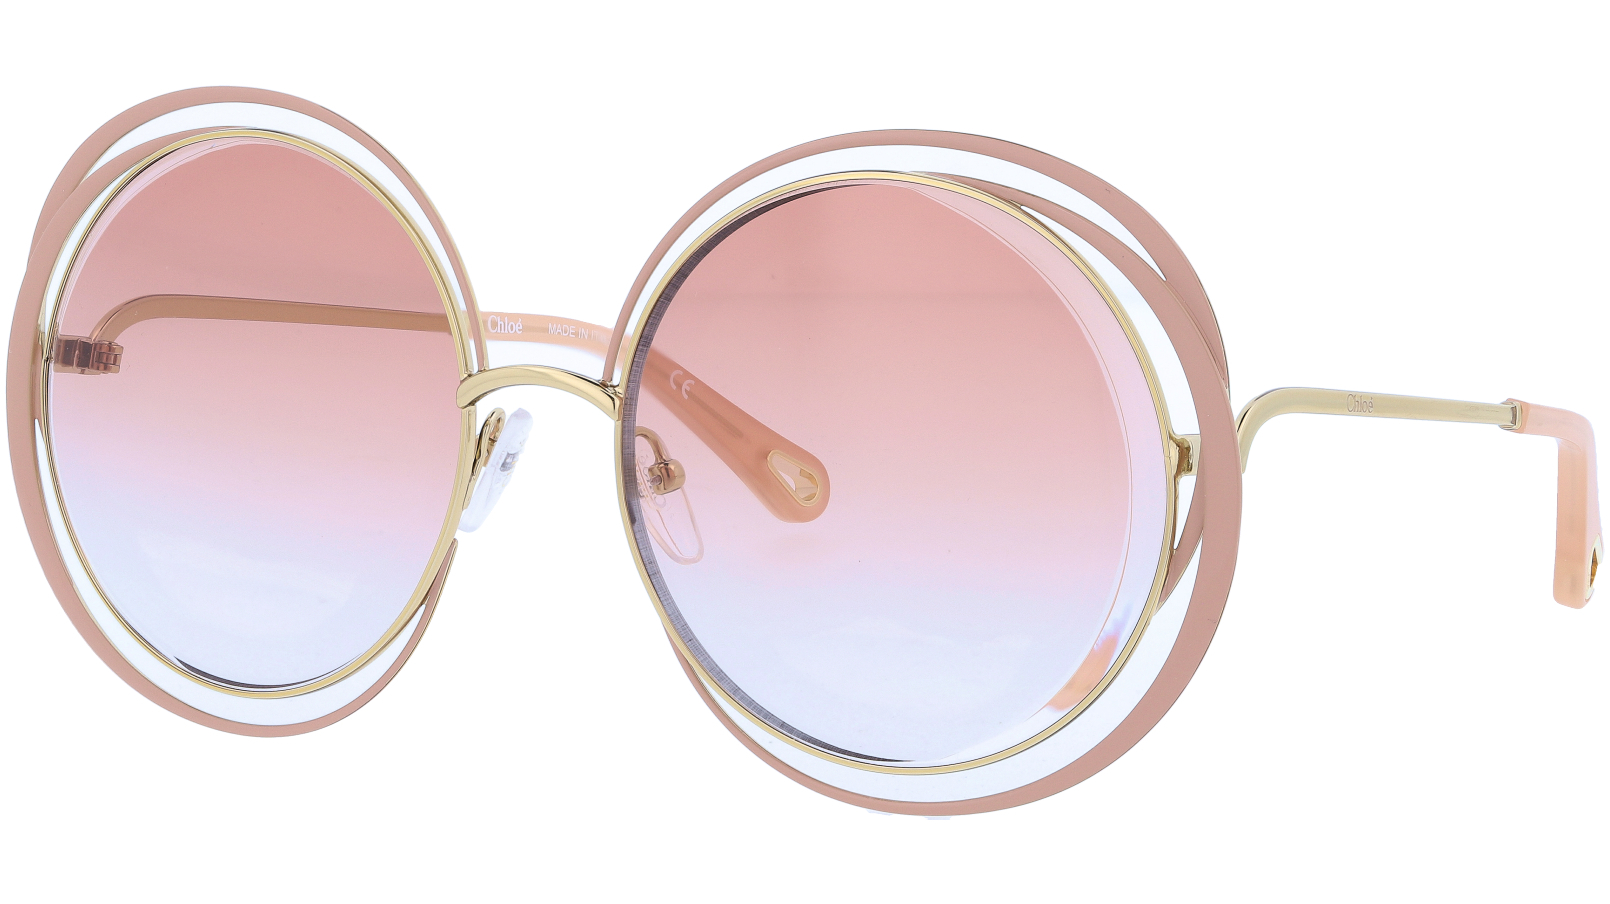 CHLOE CE155S 798 59 Gold Nude Carlina Round Sunglasses